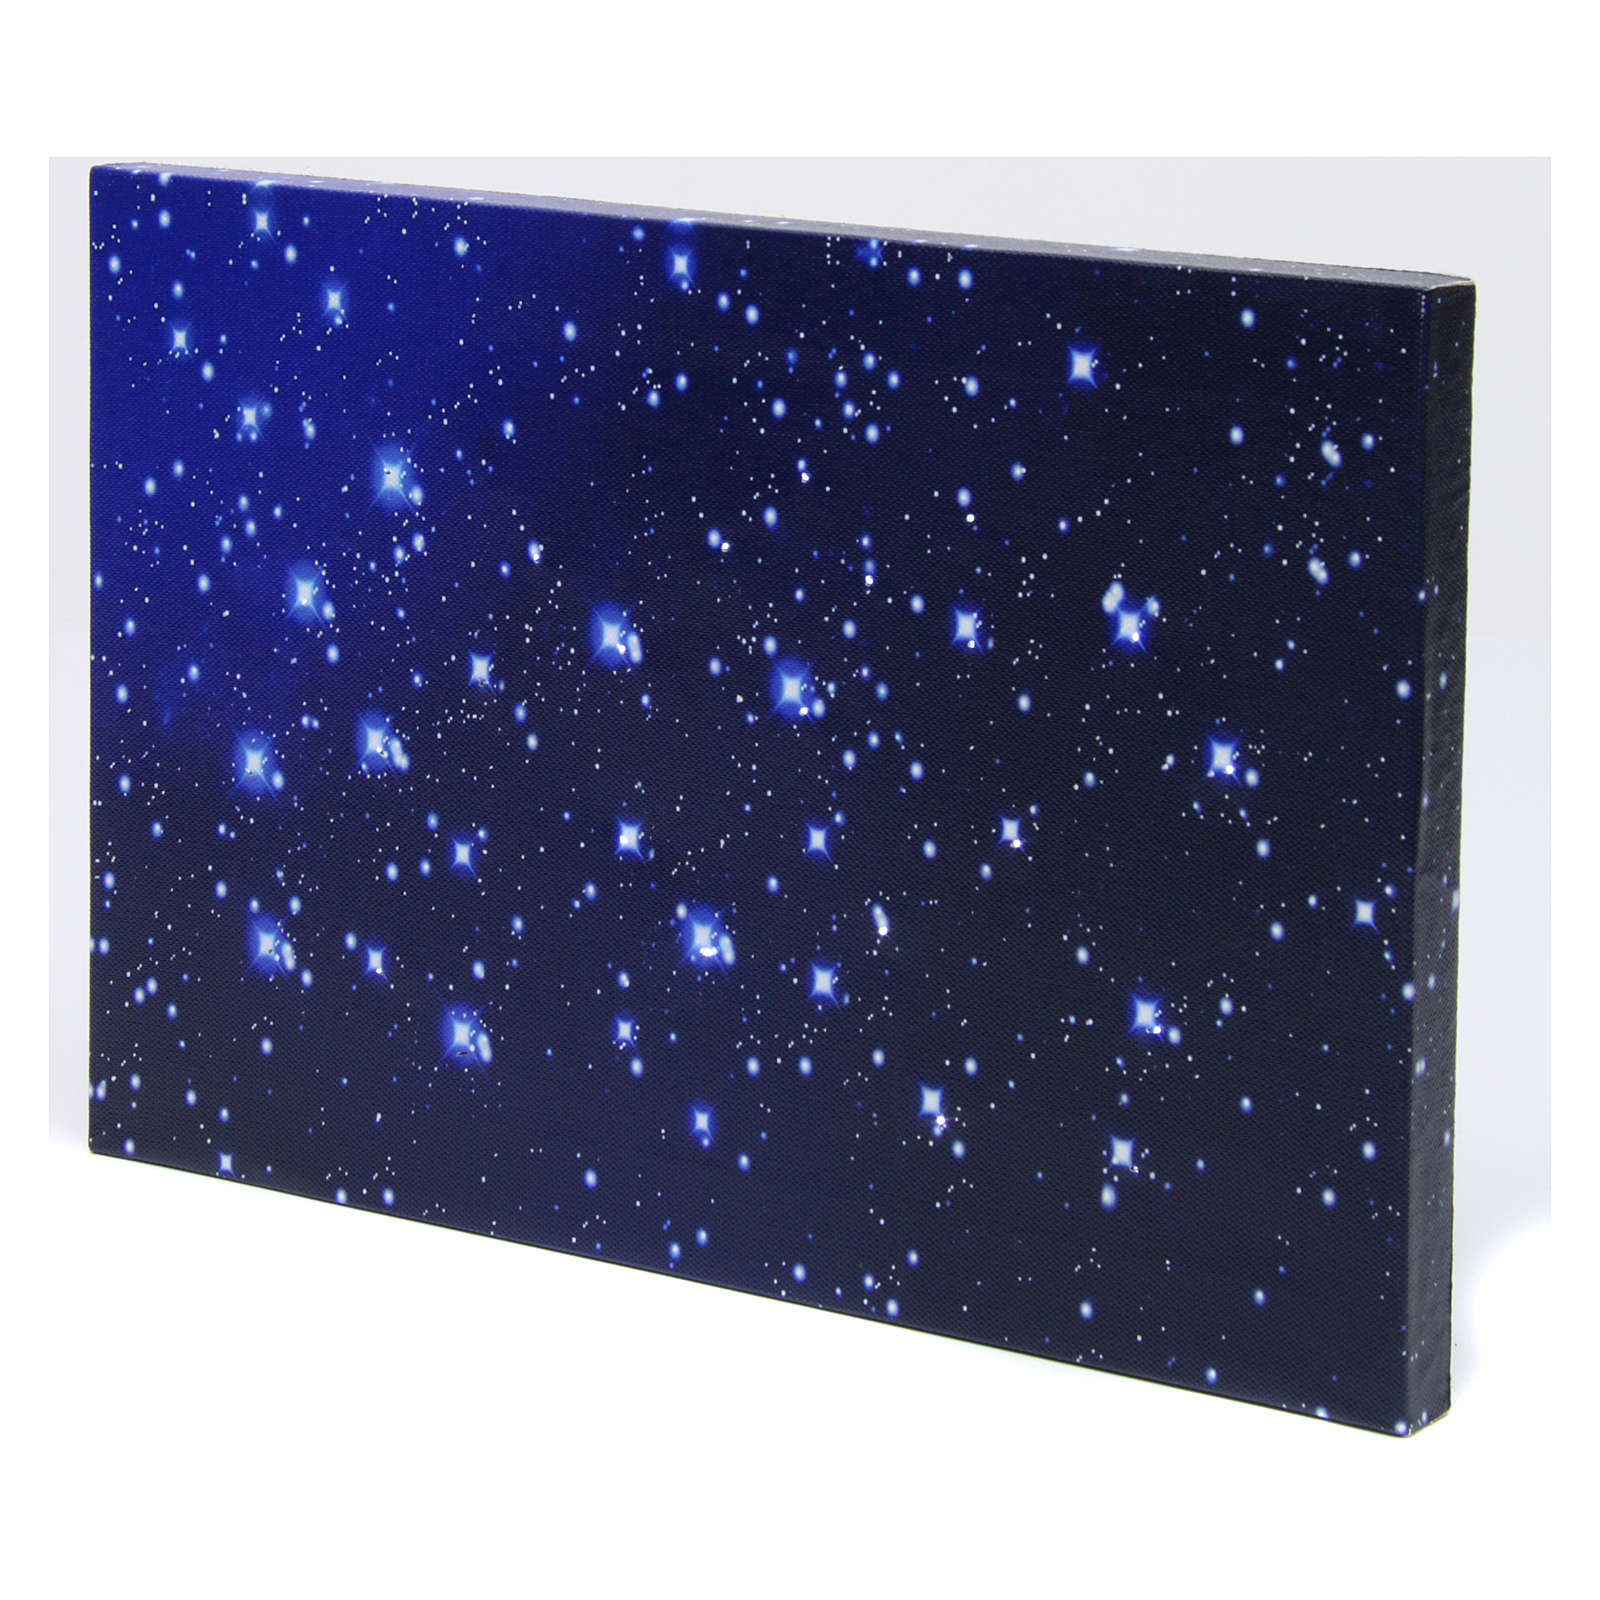 Starry sky with fibre optic lights for Neapolitan Nativity scene 30x20 cm 4